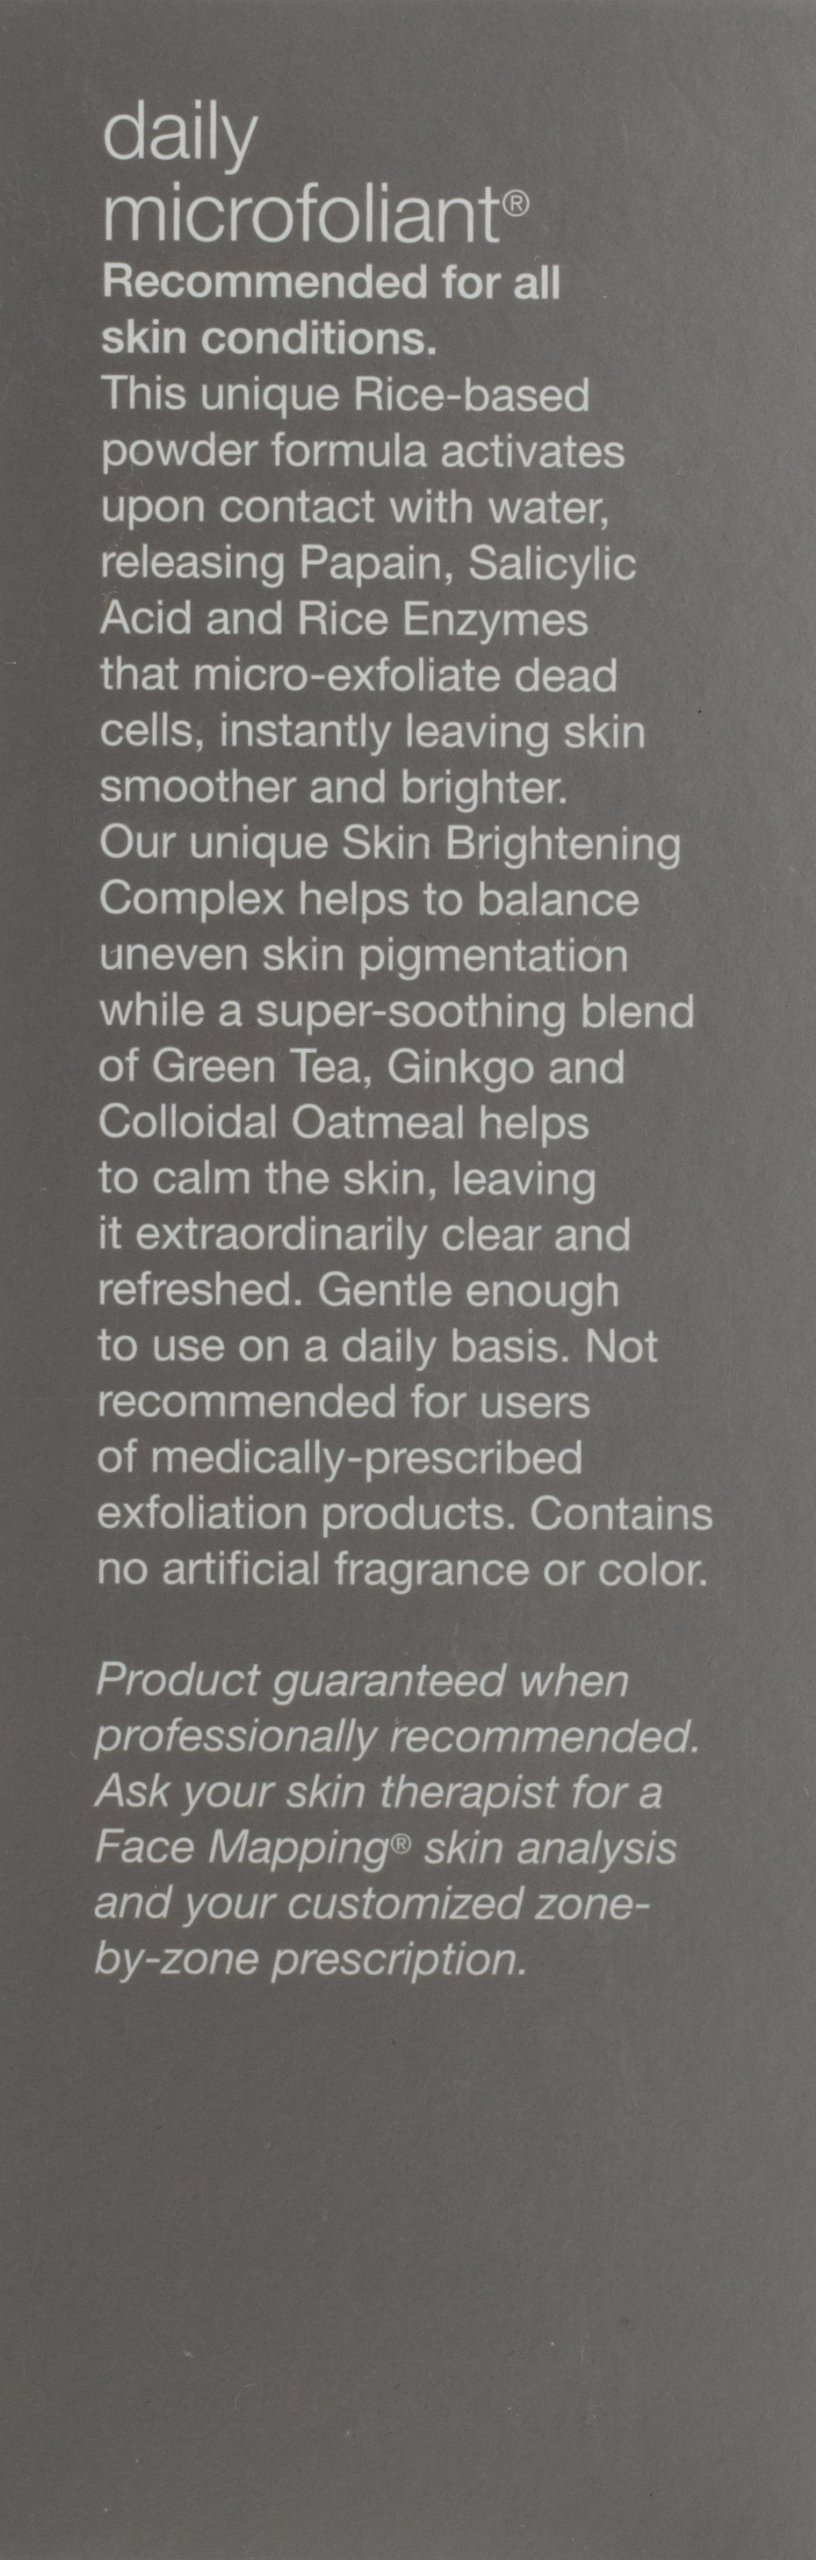 Dermalogica Daily Microfoliant, 2.6-Ounce by Dermalogica (Image #2)